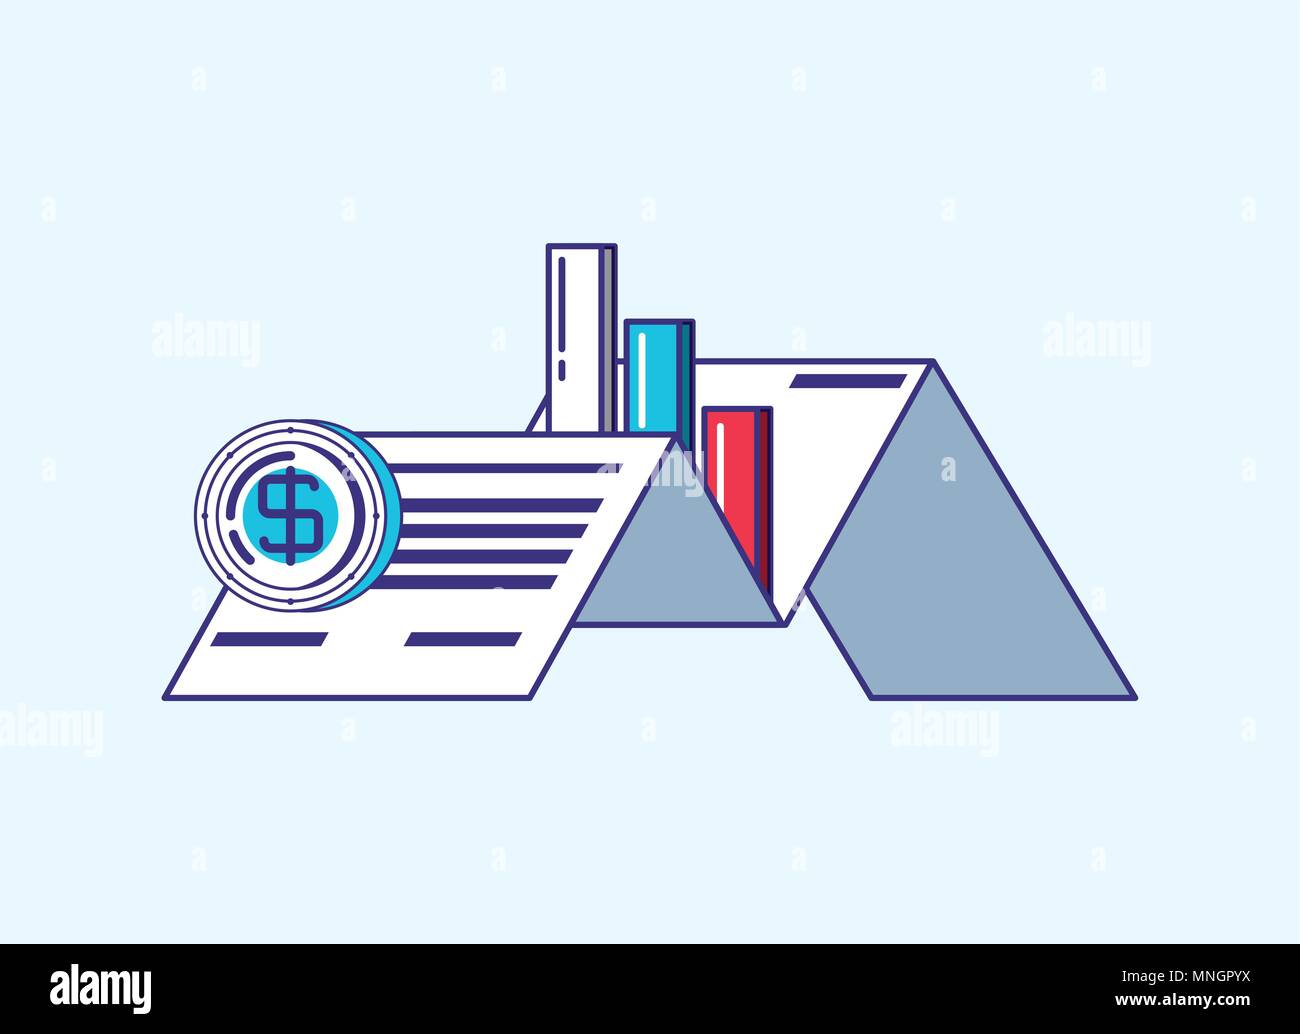 business document with financial technology related icons over white background, colorful design. vector illustration - Stock Image